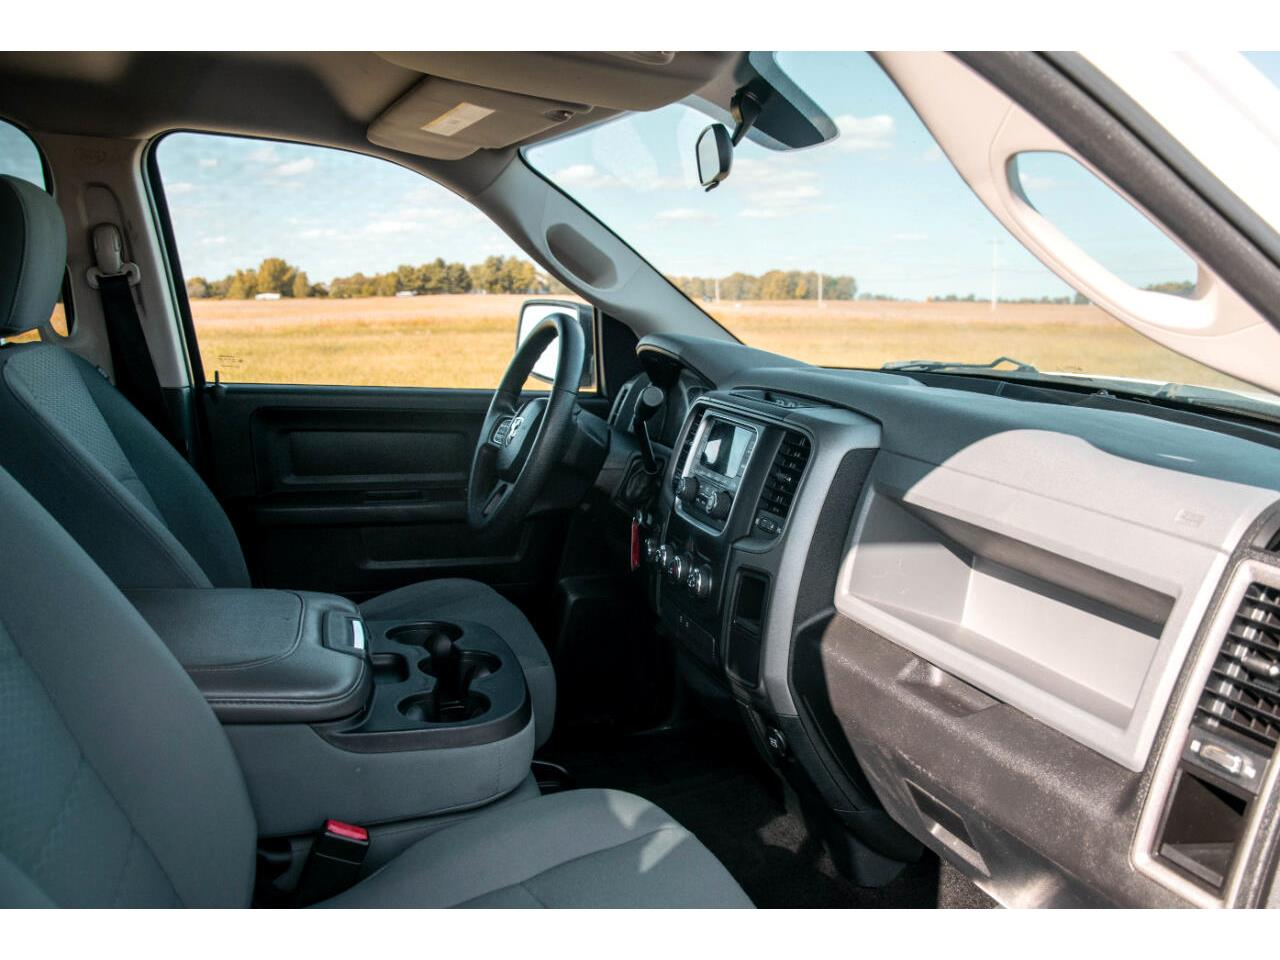 2013 Dodge Ram 1500 (CC-1391491) for sale in Cicero, Indiana